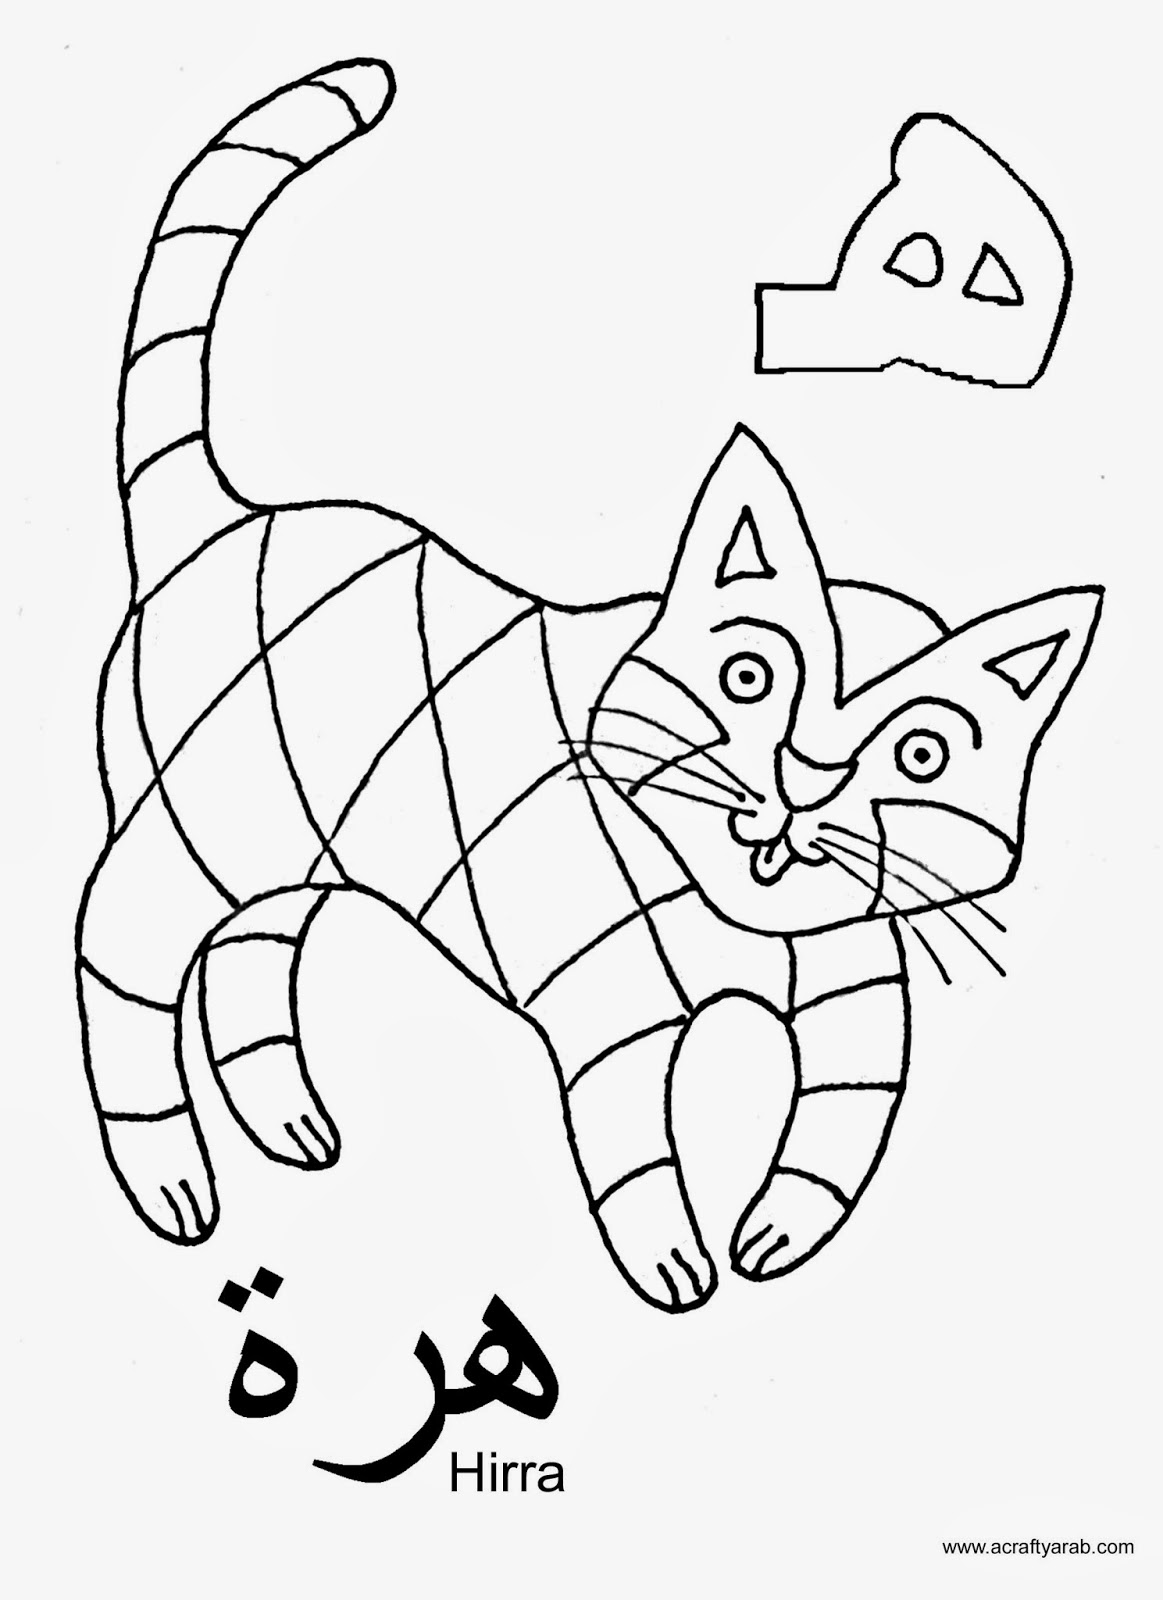 Arabic Alphabet Coloring Pages Haa Is For Hirra